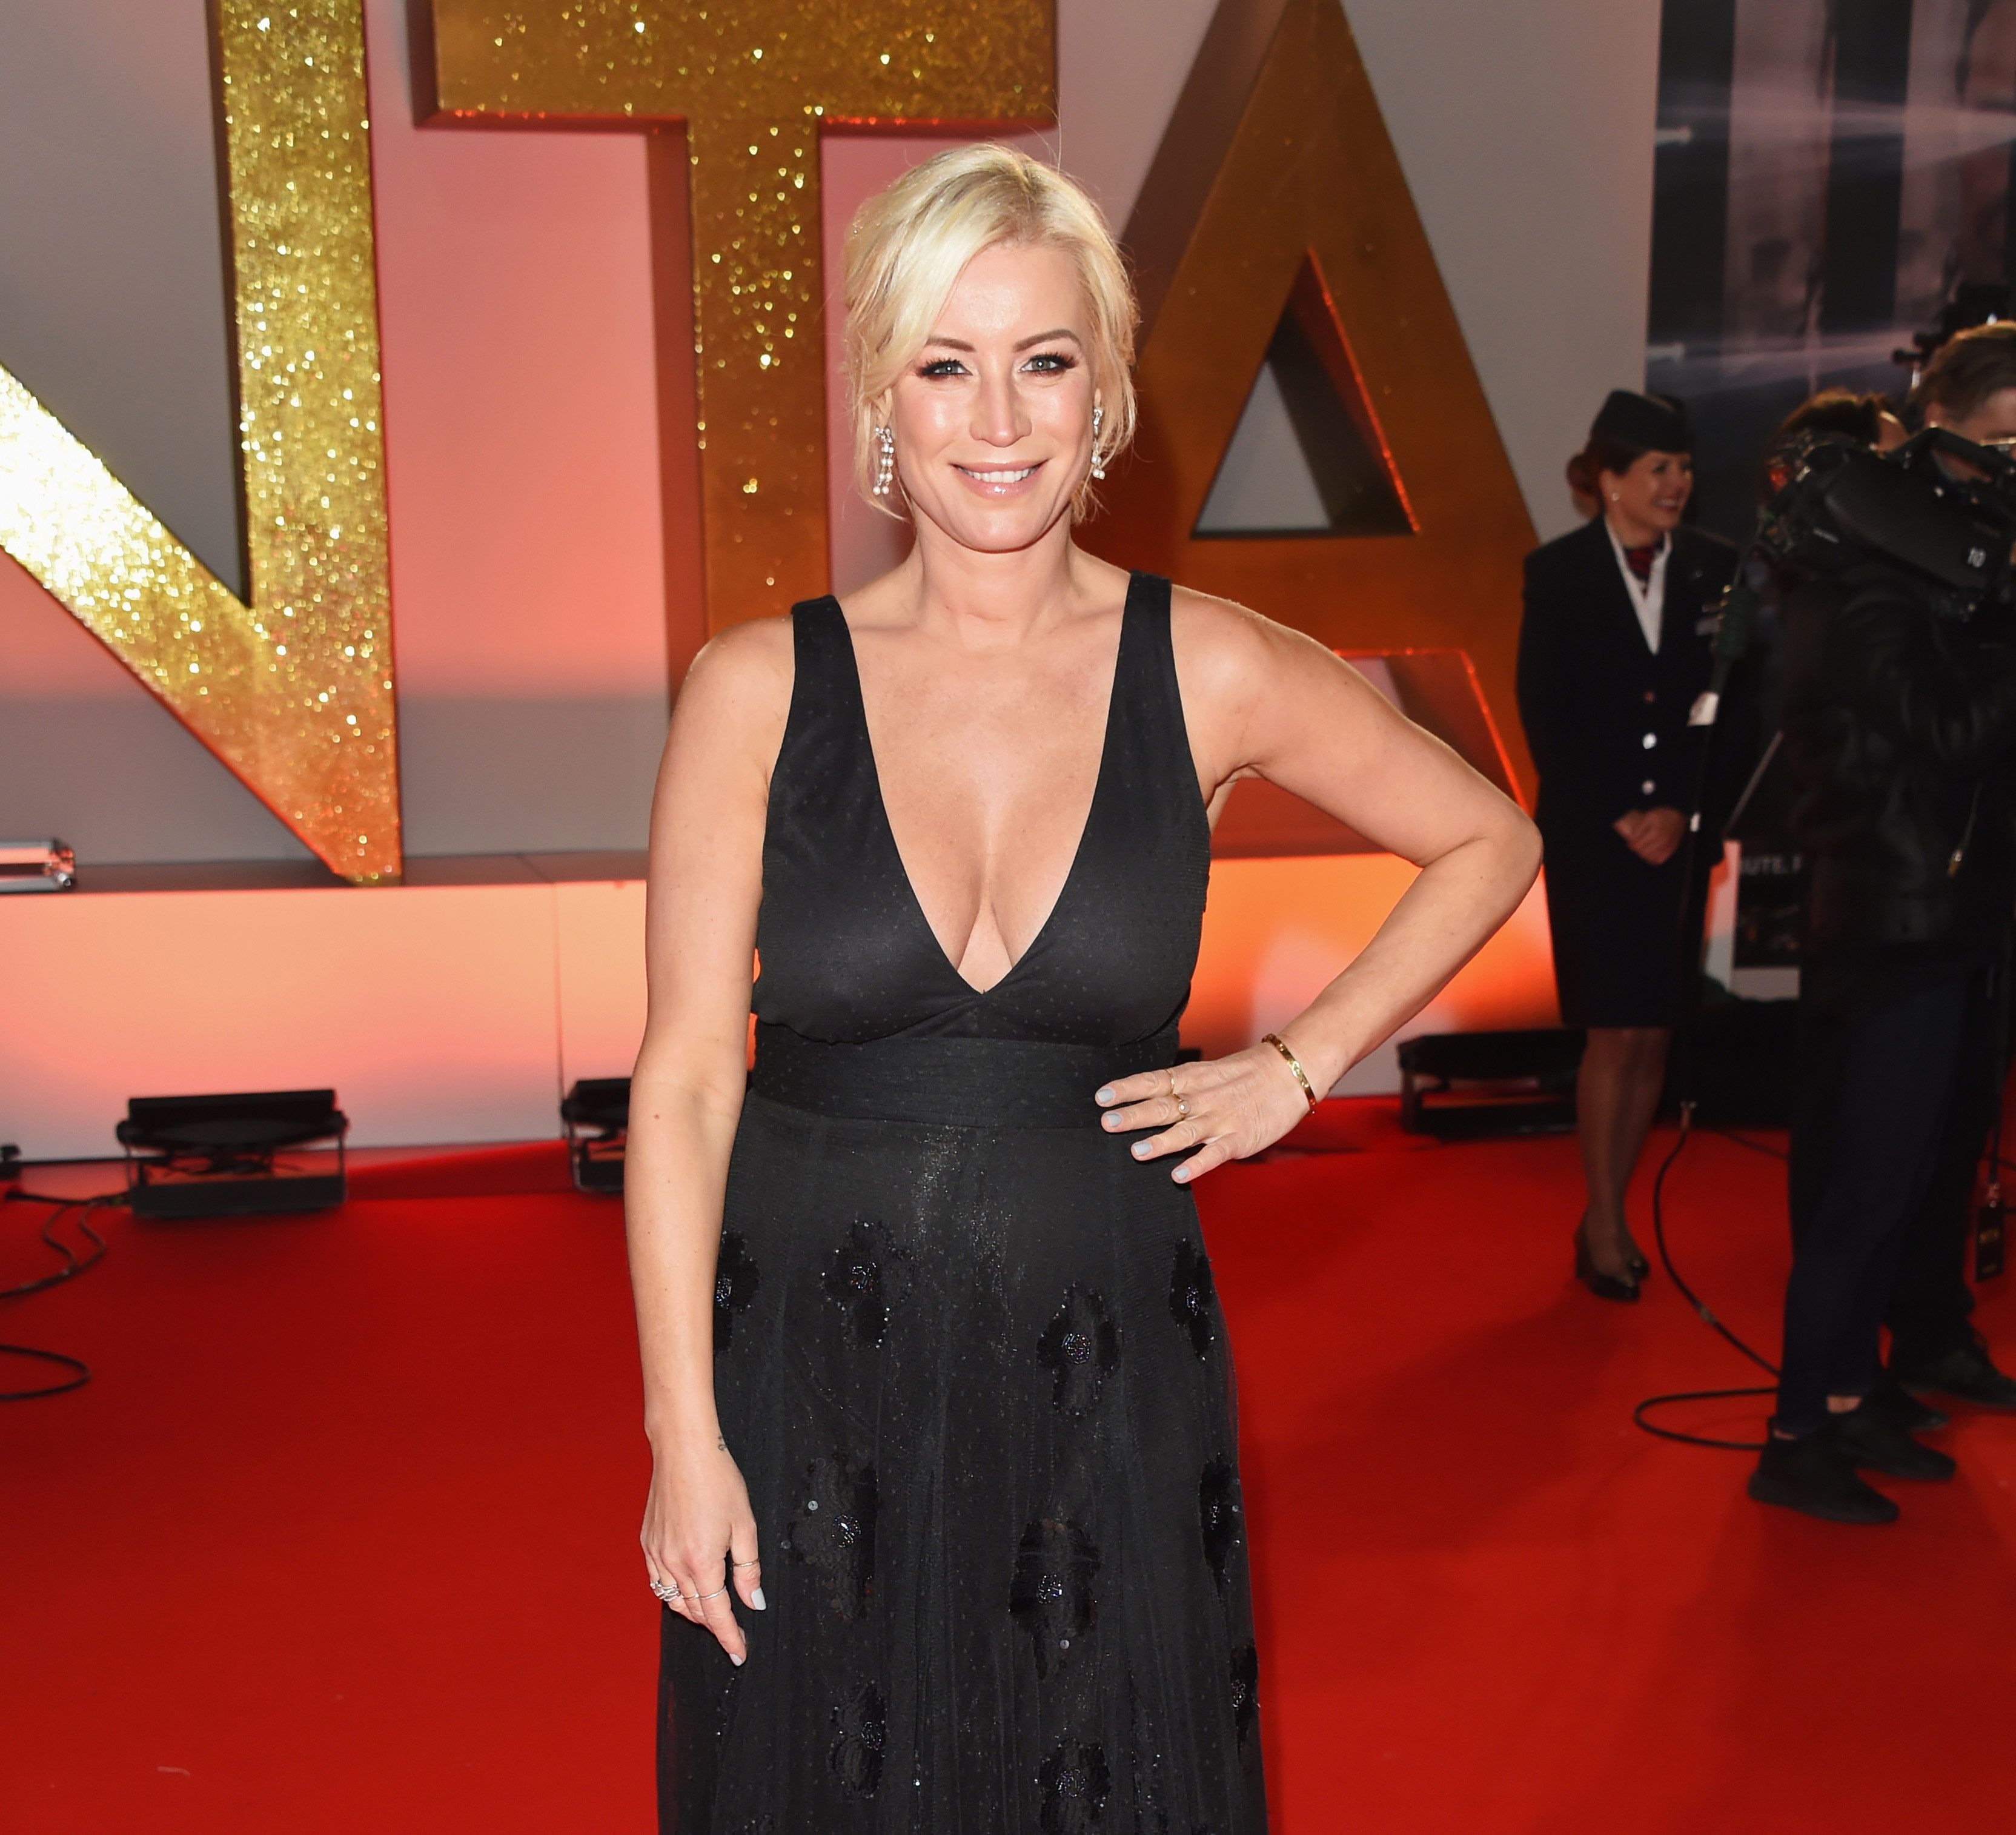 Denise Van Outen shares more details about her upcoming Neighbours role as Harlow's mother Prue